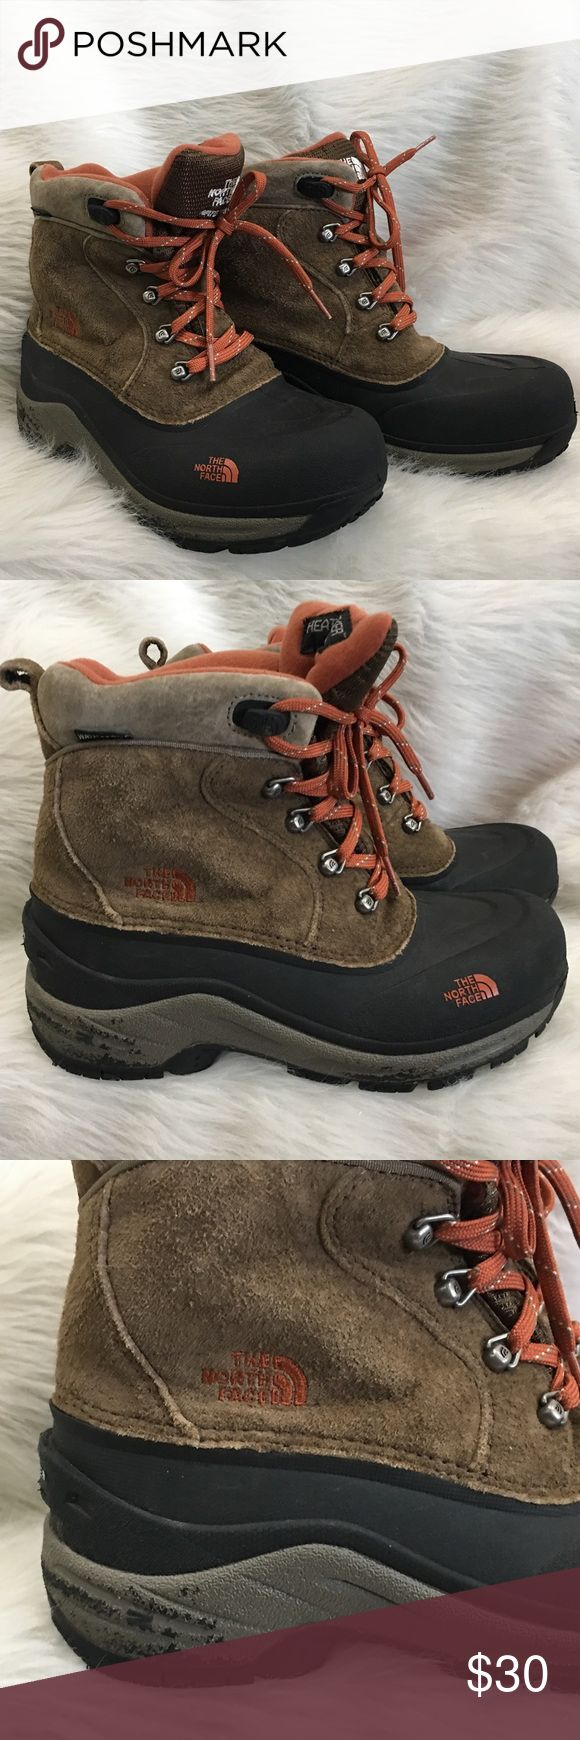 North face boys garcons winter warm boots size 6 North face brown garcons leather winter boy boots size 6, they are used and in ok condition. The boots are very warm with a waterproof sole. They are used and do have some wear as you can see in the pic. The boots come from a smoke free home. North Face Shoes Rain & Snow Boots